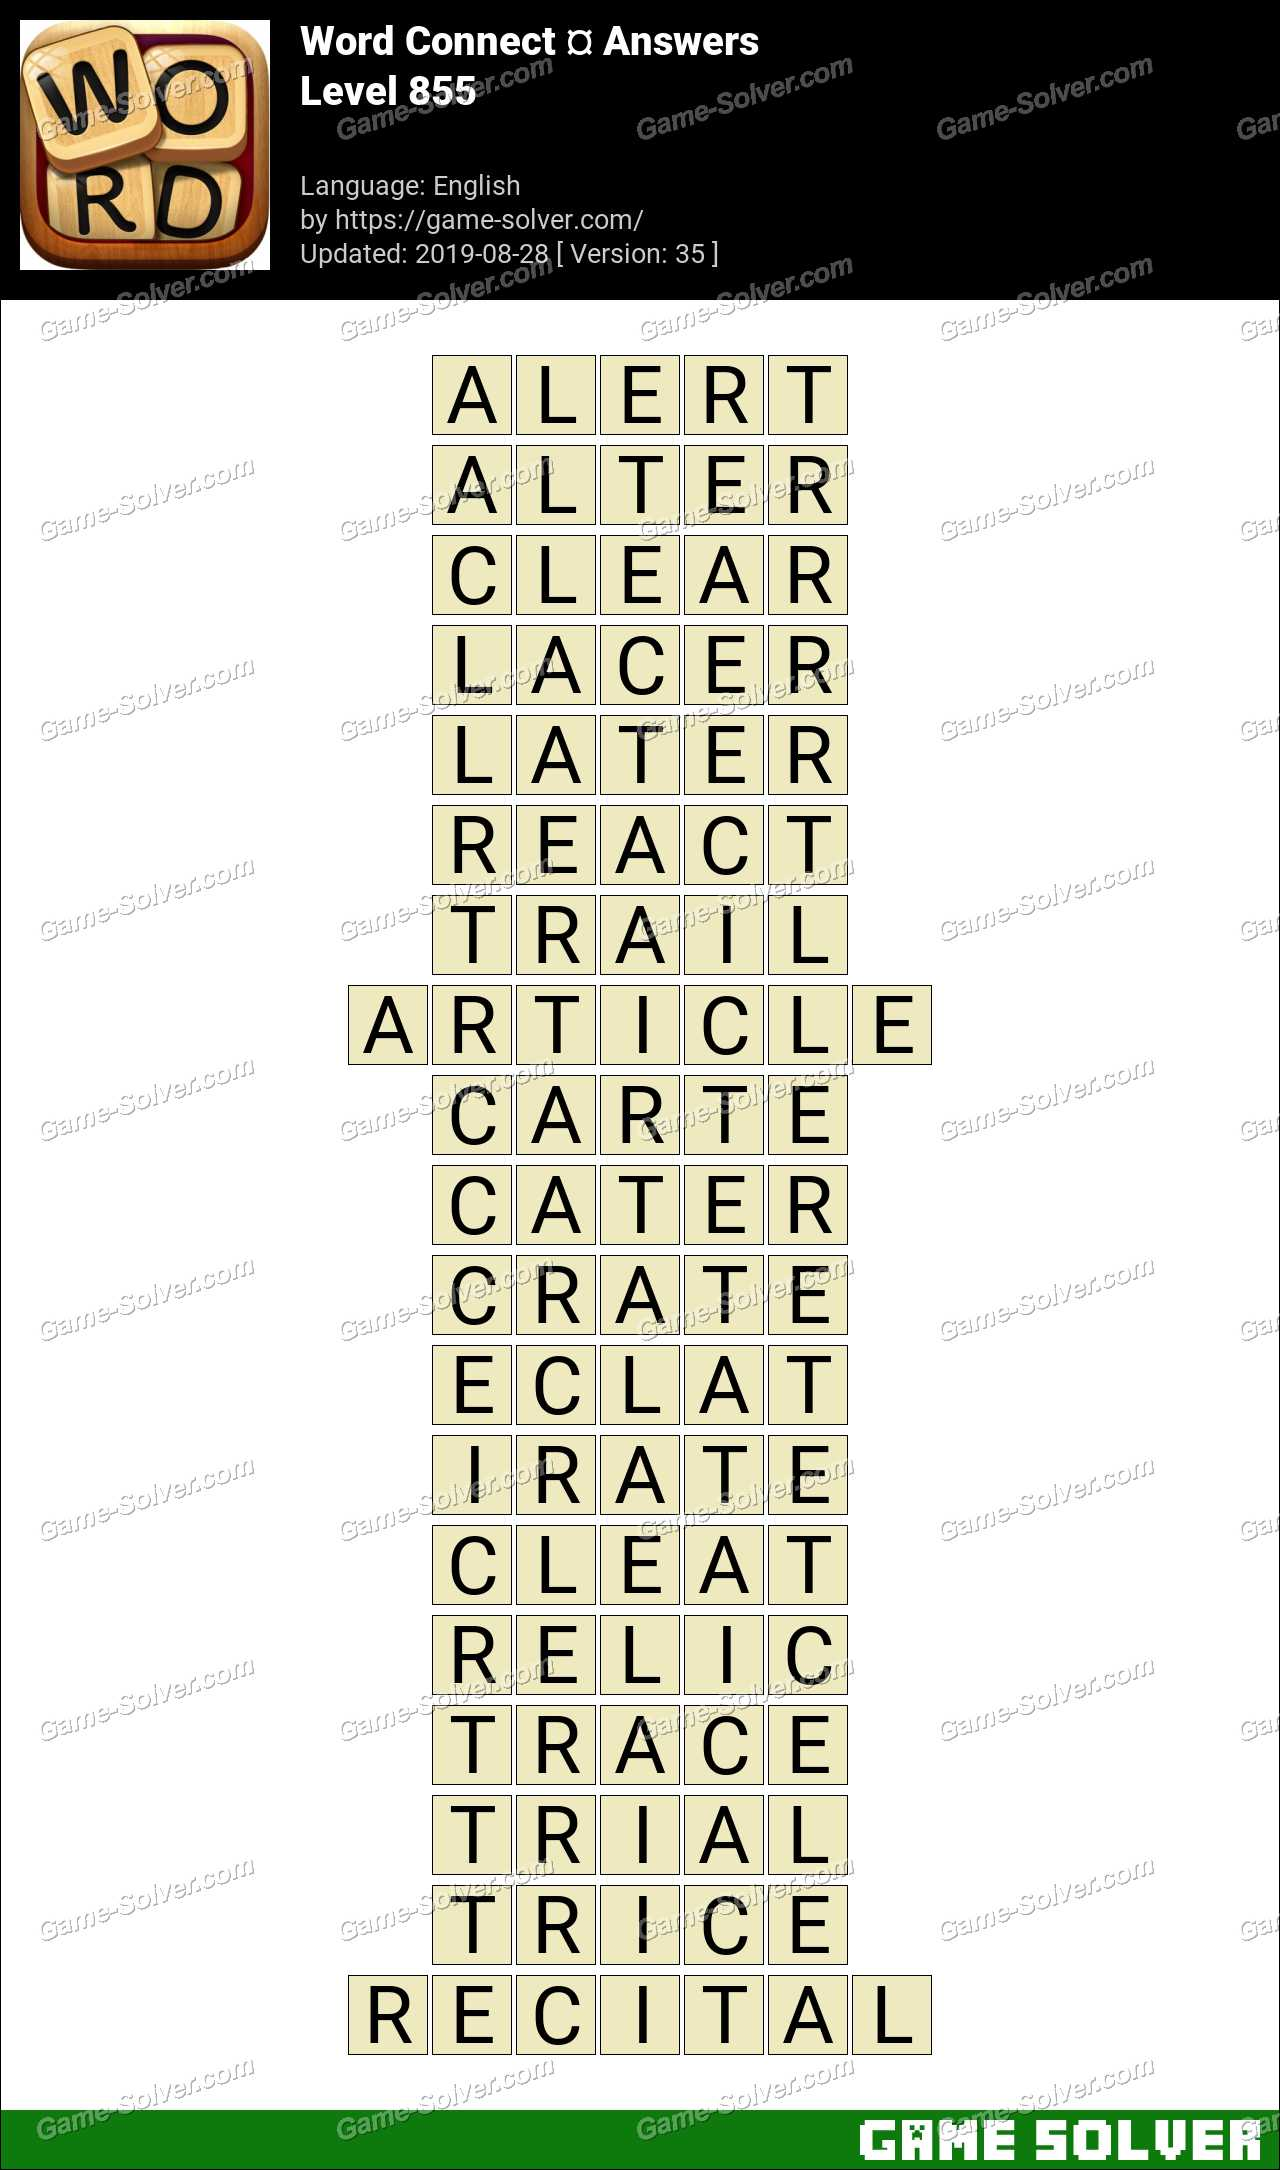 Word Connect Level 855 Answers